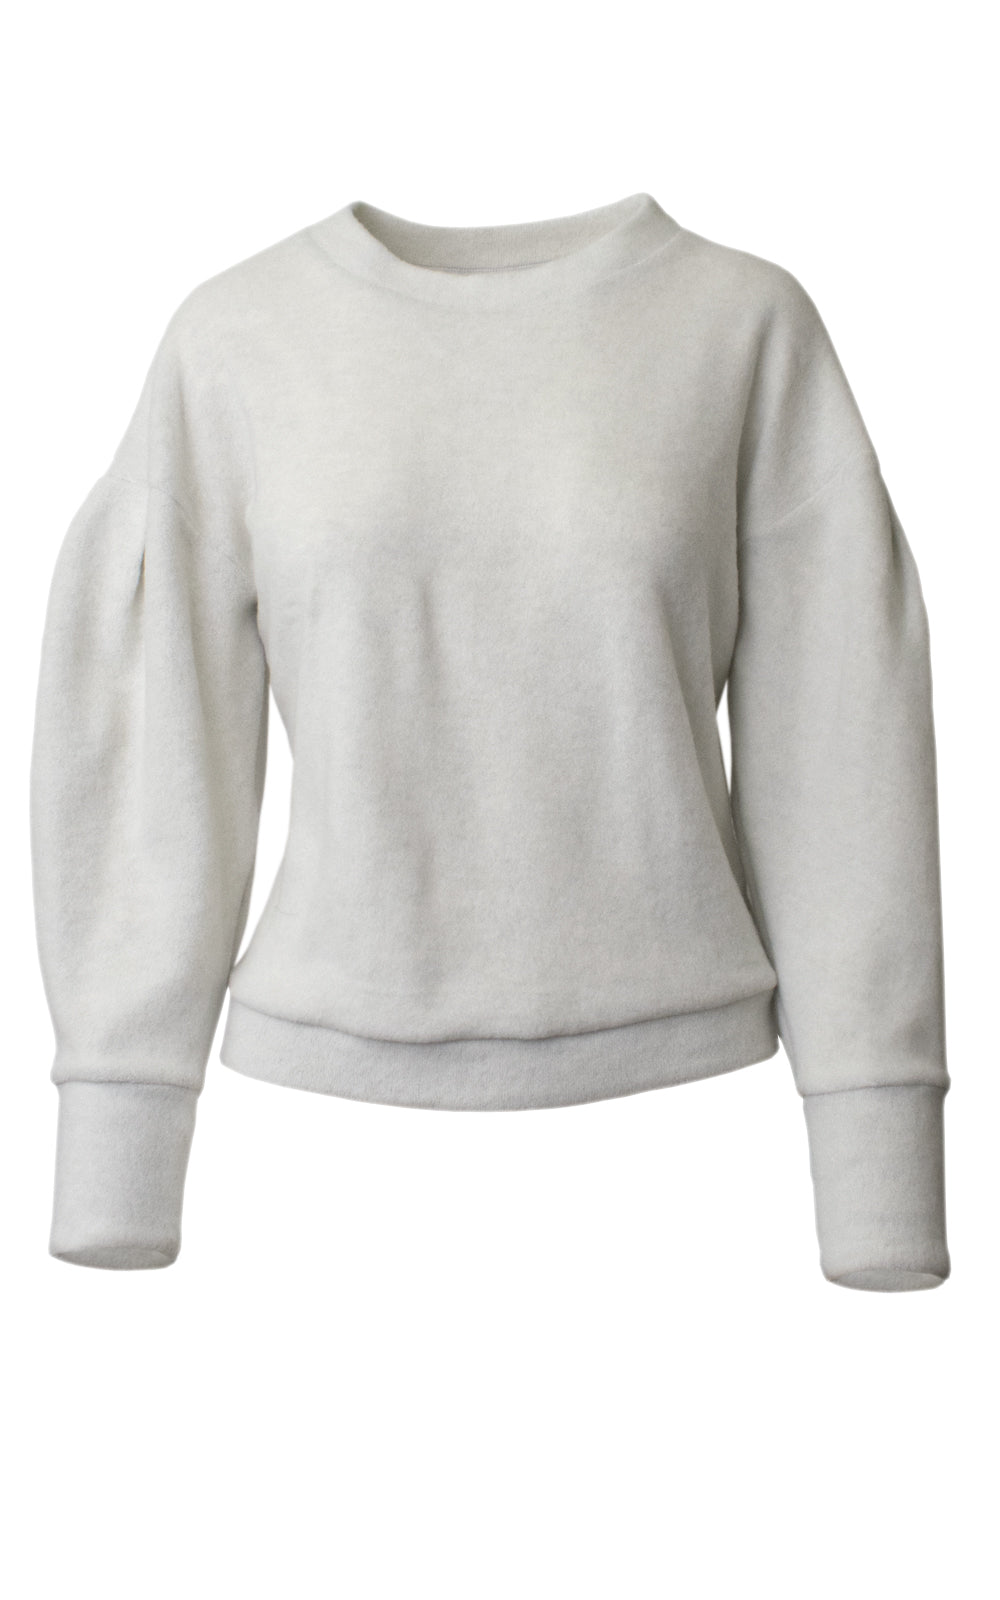 McGuire Bella Bubble Sleeve Fuzzy Fleece Crewneck Sweatshirt Front